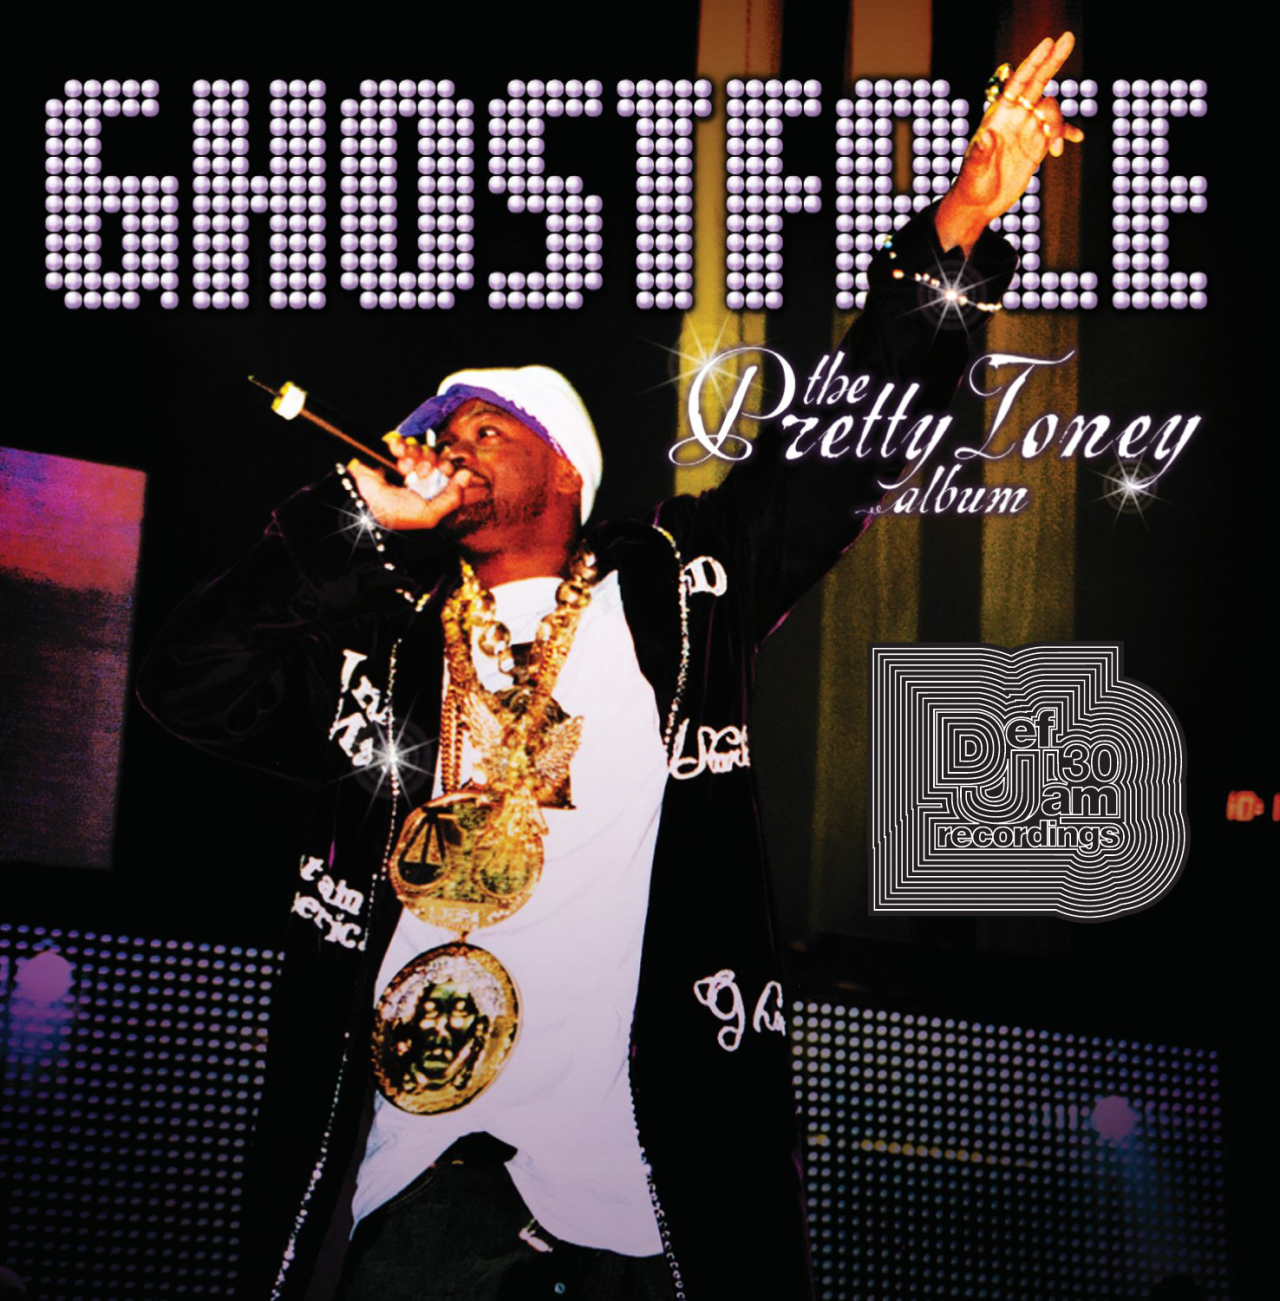 "defjamblr: Since 1984: On this day in 2004, Ghostface Killah released his fourth studio album ""The Pretty Toney Album"" on Def Jam Recordings. #DefJam30"